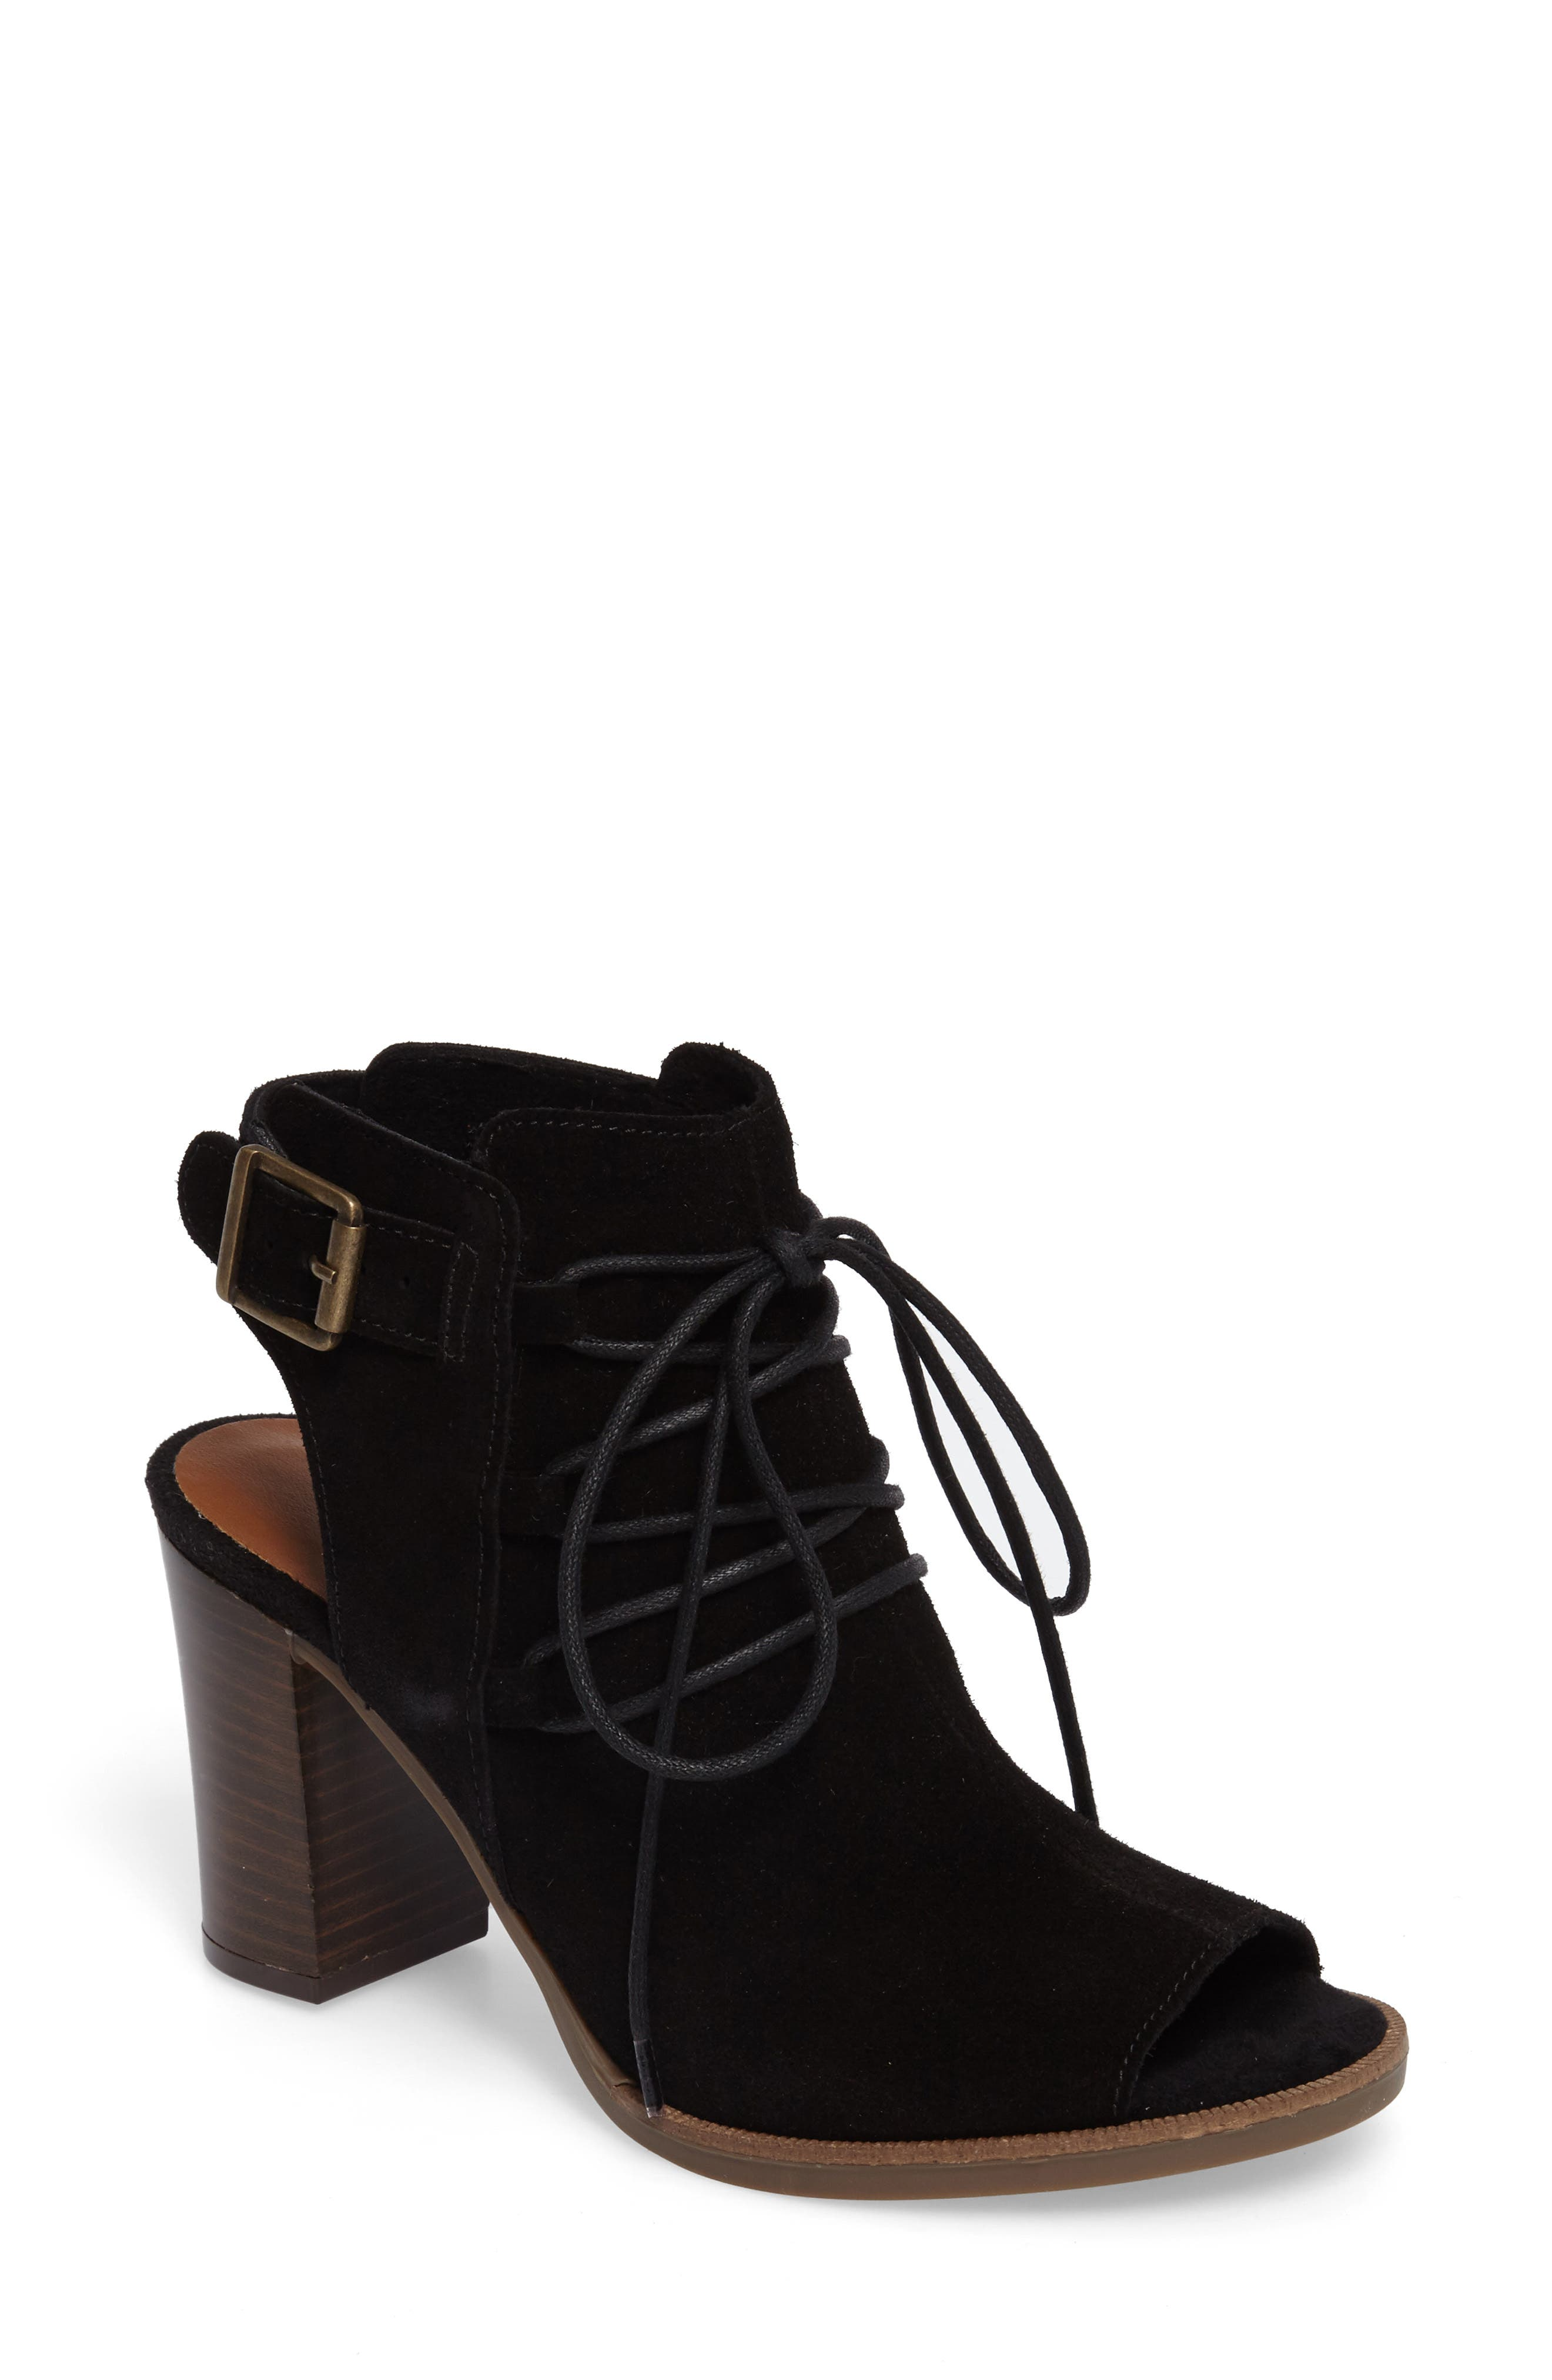 Pru Lace-Up Peep Toe Bootie,                             Main thumbnail 1, color,                             018